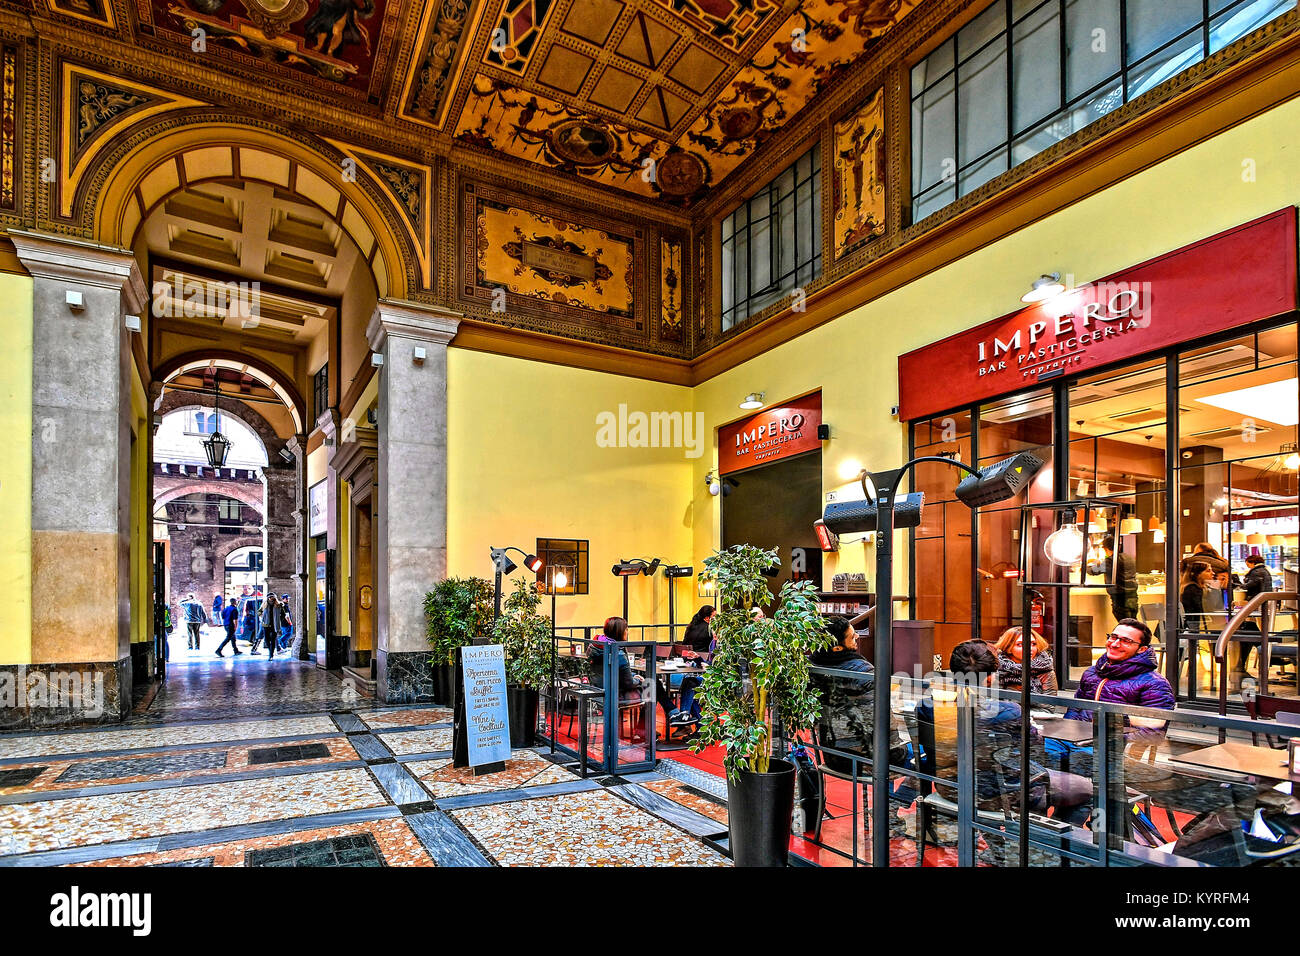 Italy Emilia Romagna Bologna - Leone Gallery Stock Photo: 172006244 ...